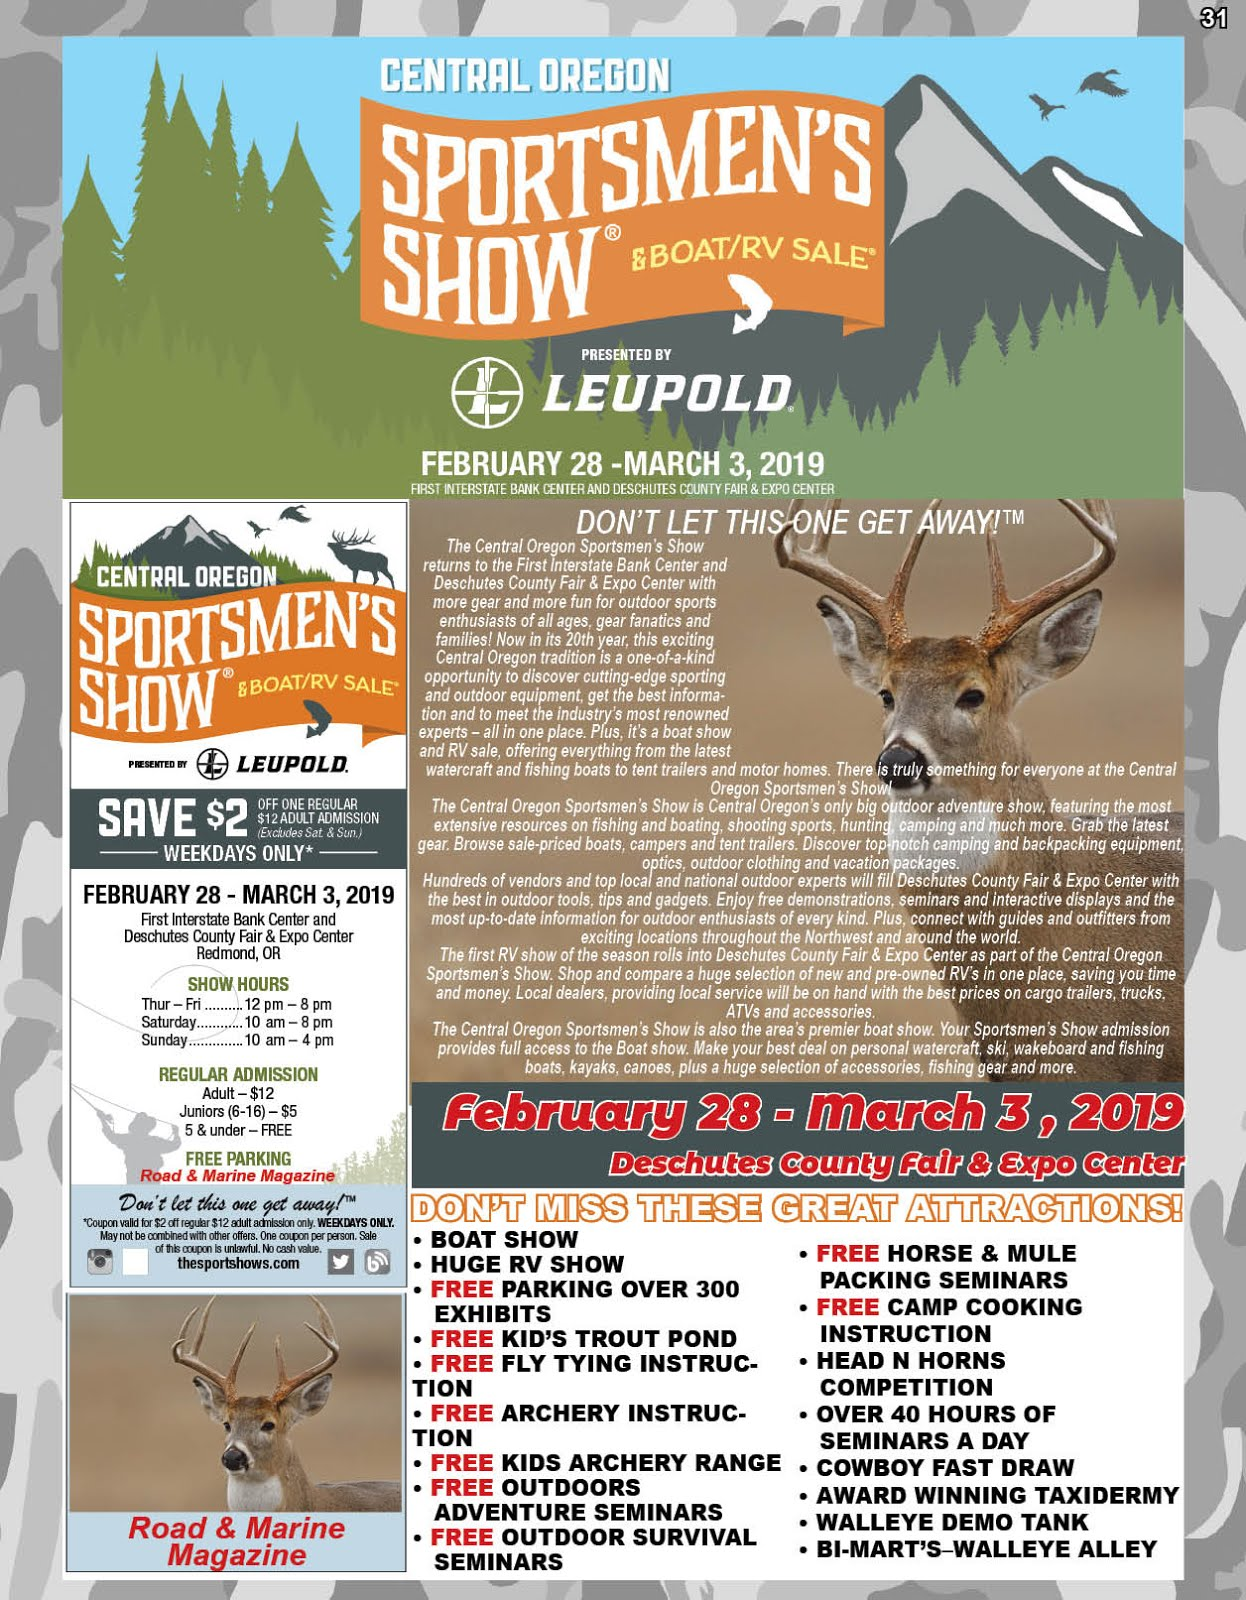 Get Your Central OR Sportsmen's Show & Boat & RV Sale Discount Tickets Here!!